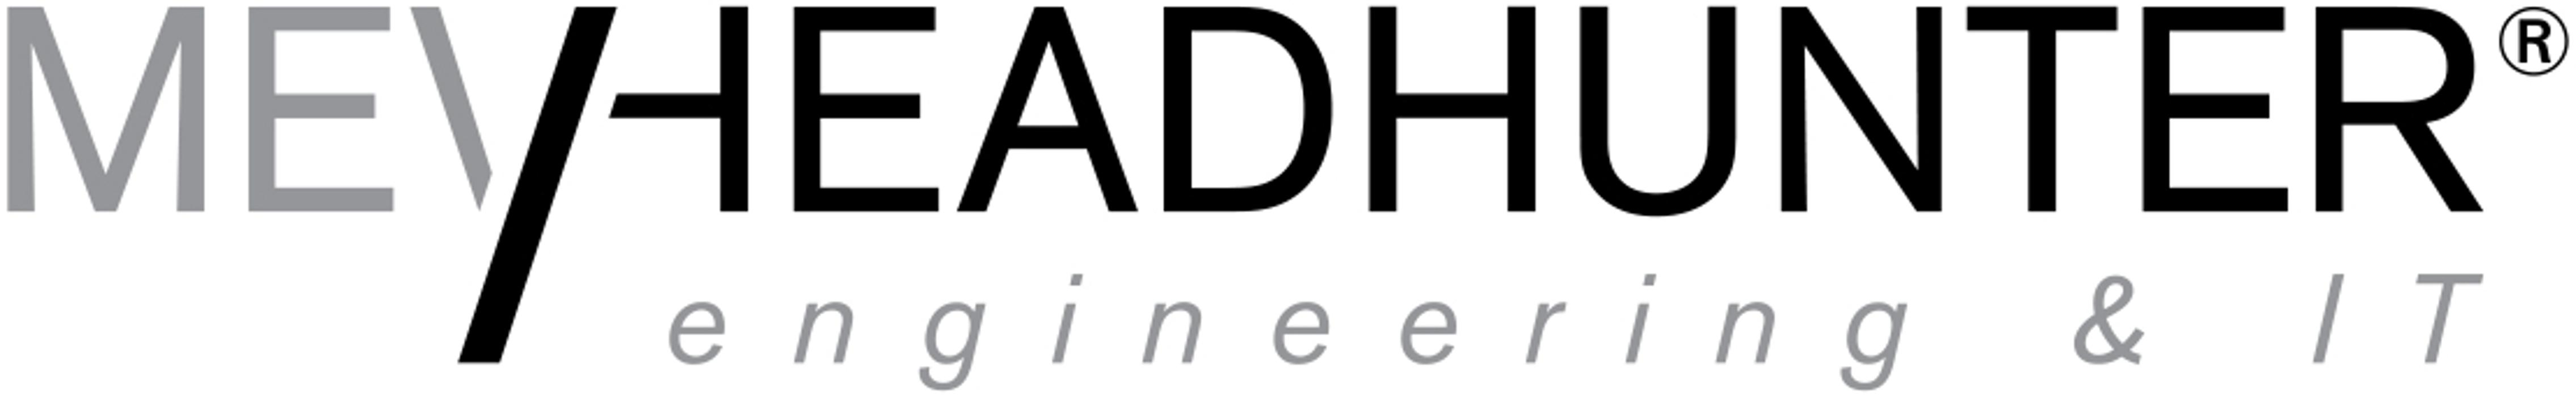 Bild zu MEYHEADHUNTER - ENGINEERING & IT Headhunter Düsseldorf in Düsseldorf